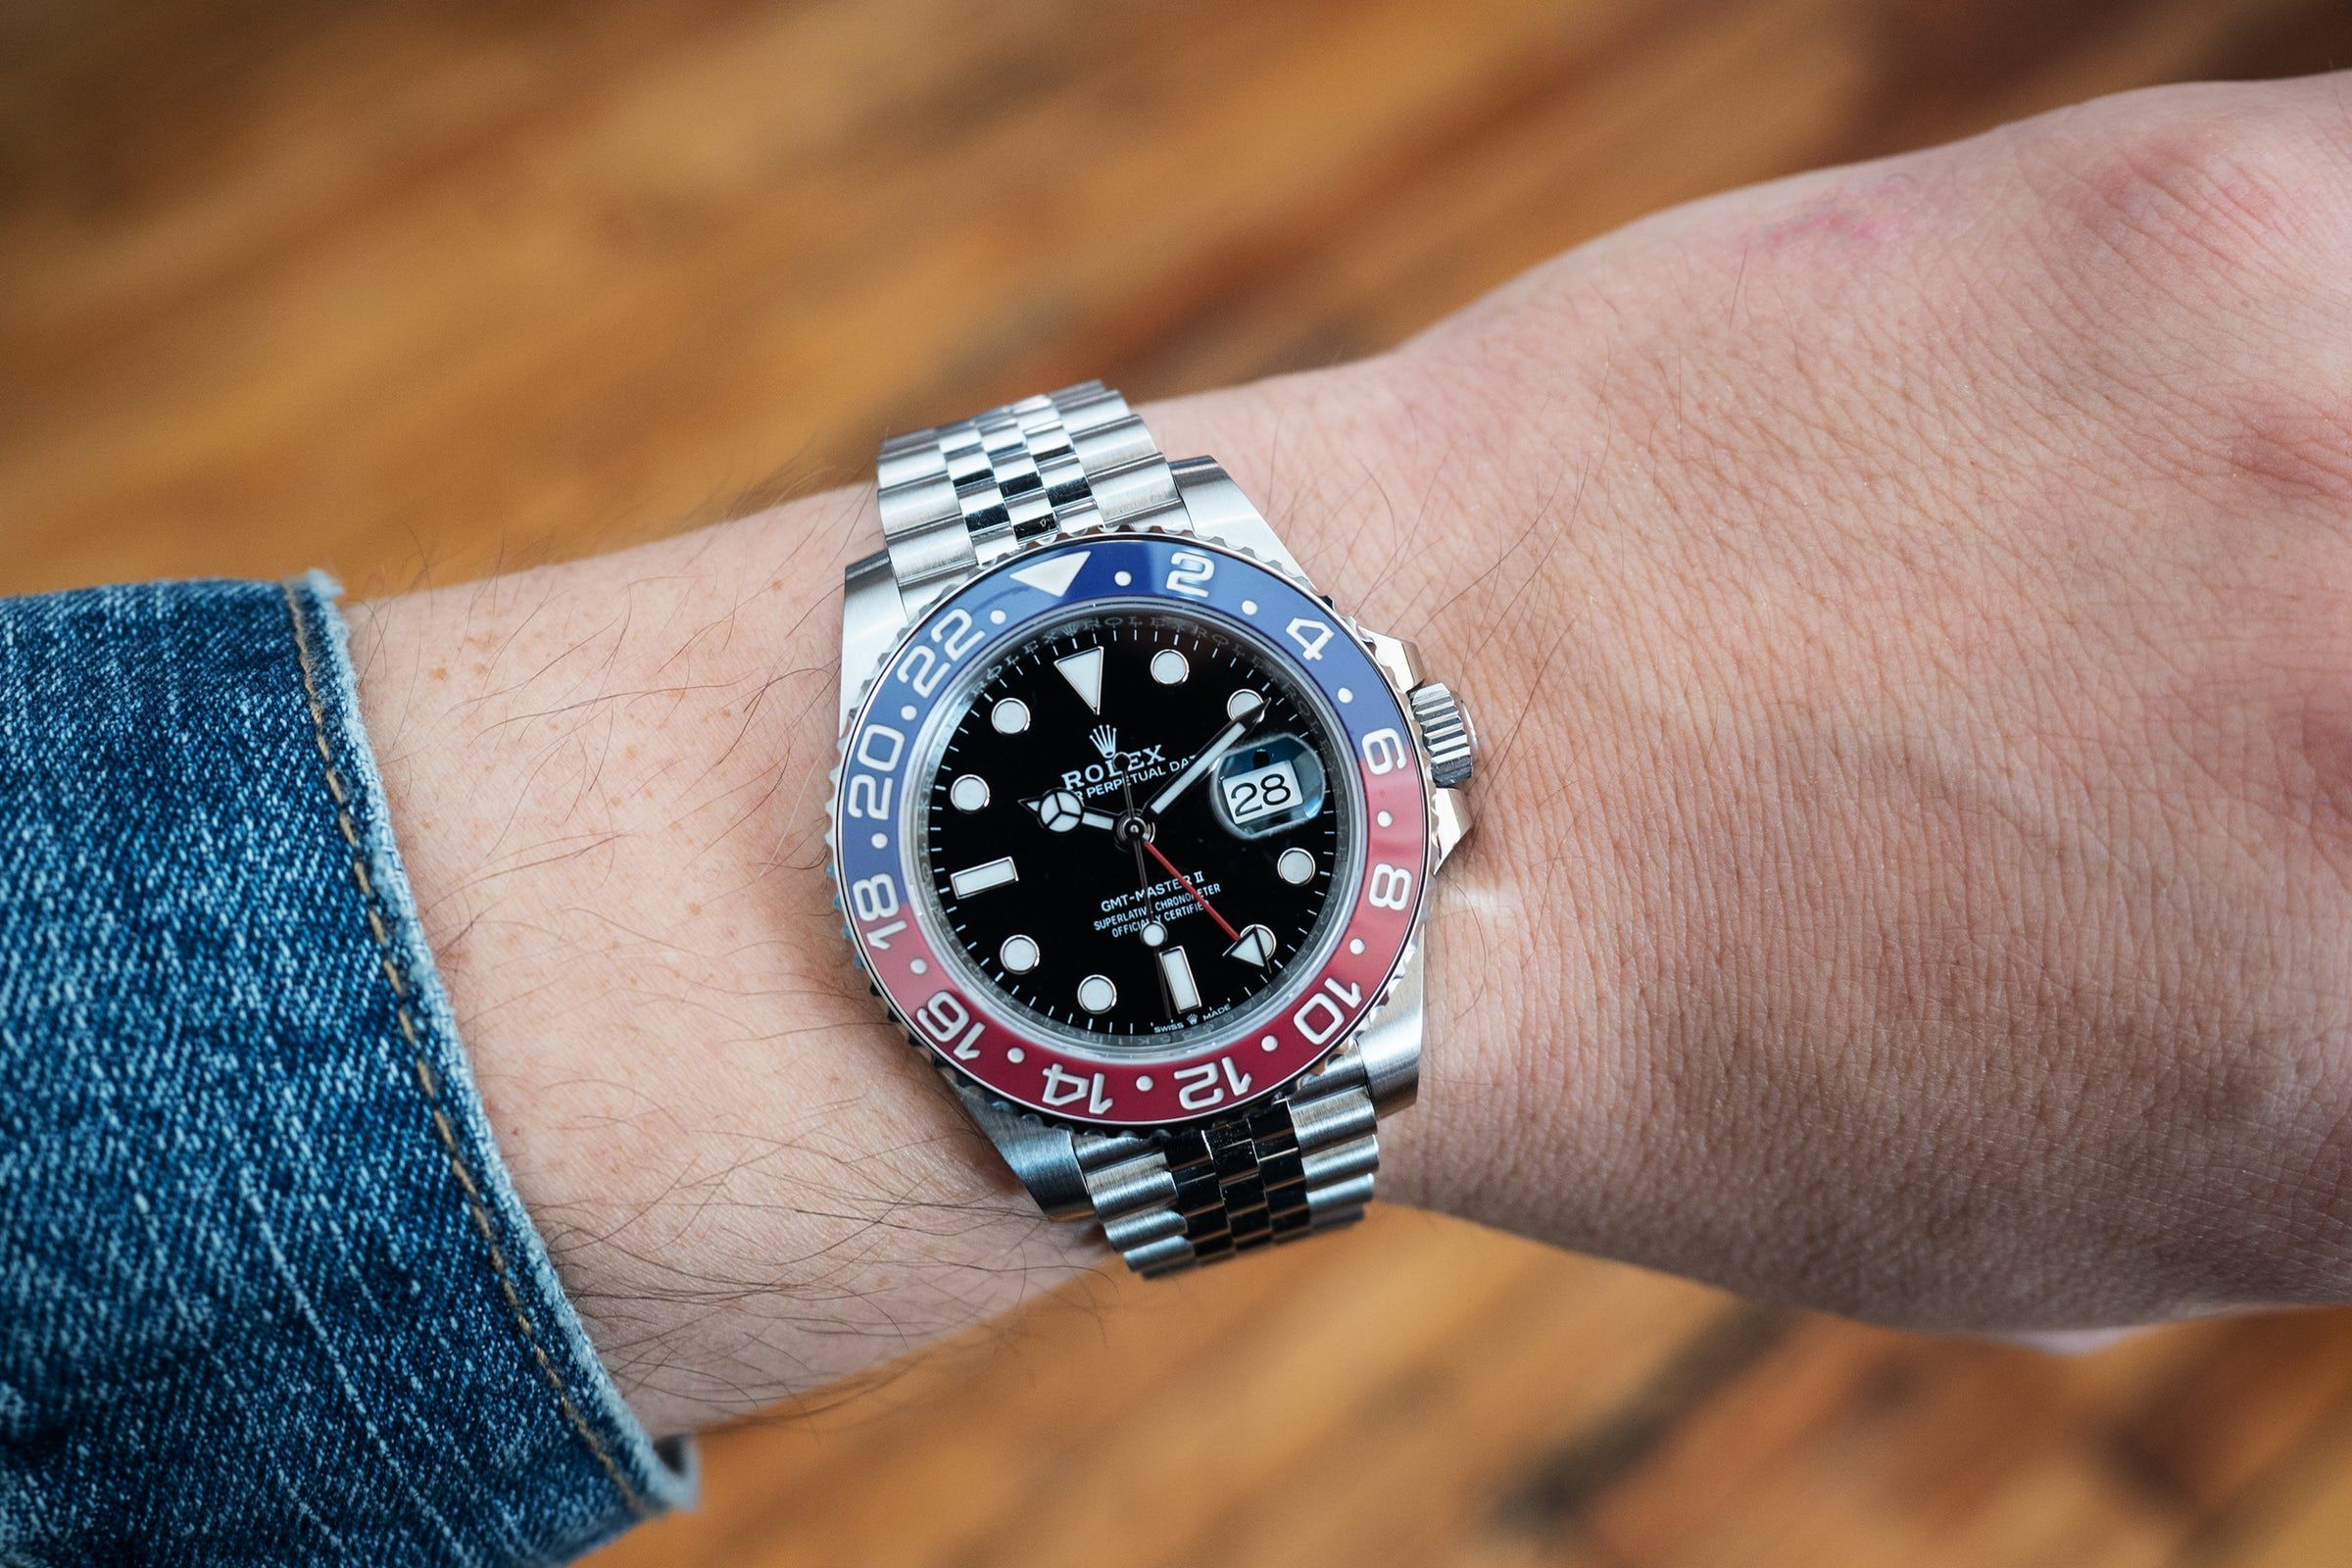 Hands,On The Rolex GMT,Master II Ref. 126710 BLRO \u0027Pepsi